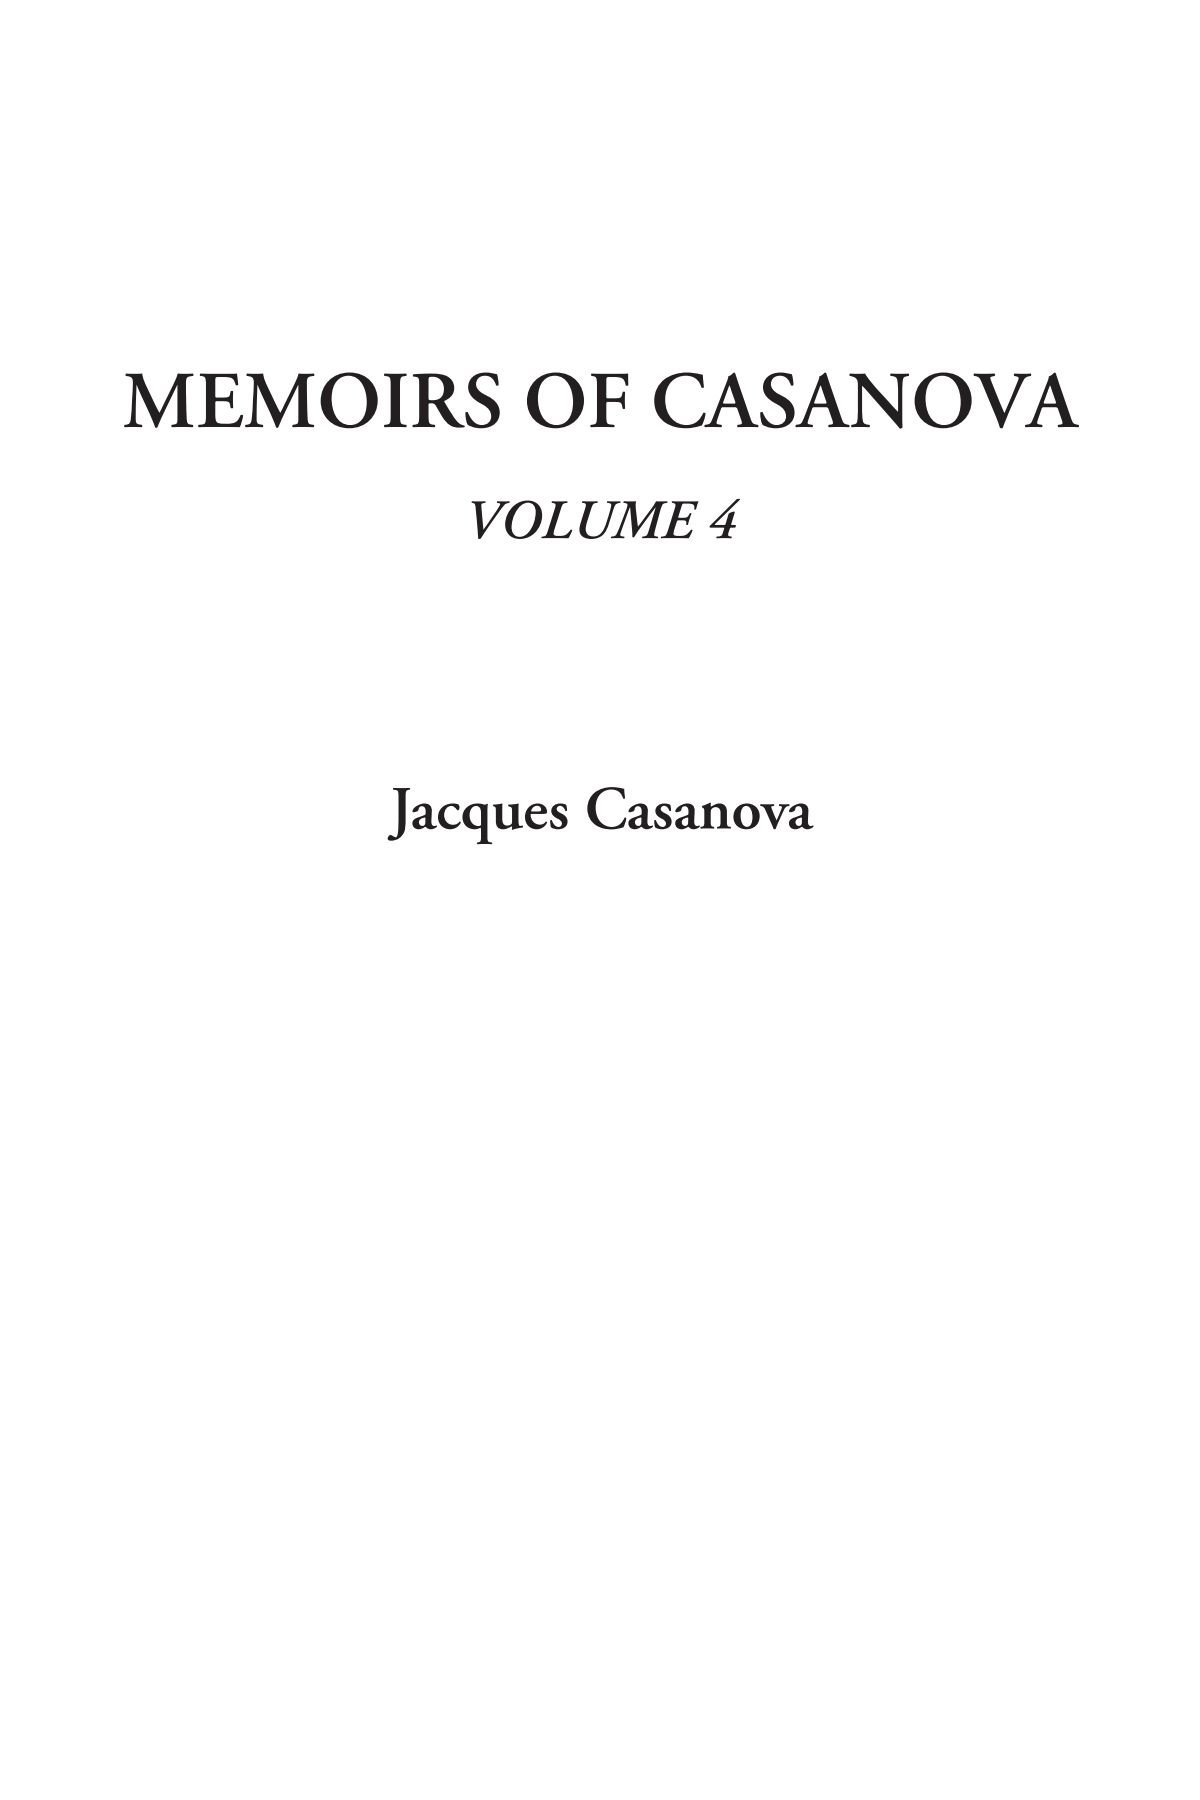 Memoirs of Casanova, Volume 4 ebook